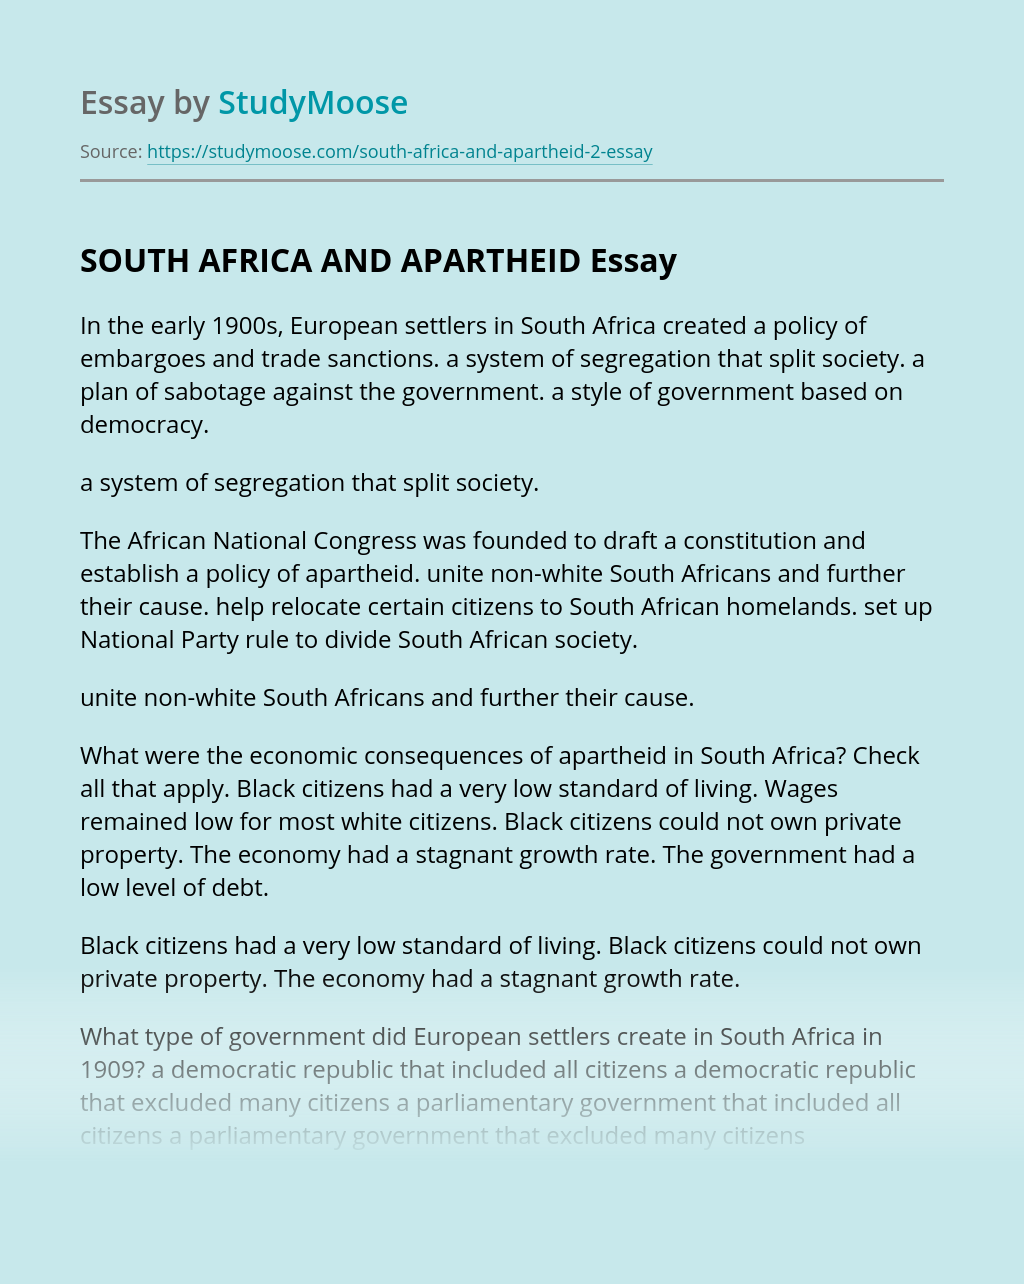 SOUTH AFRICA AND APARTHEID TEST MATERIALS